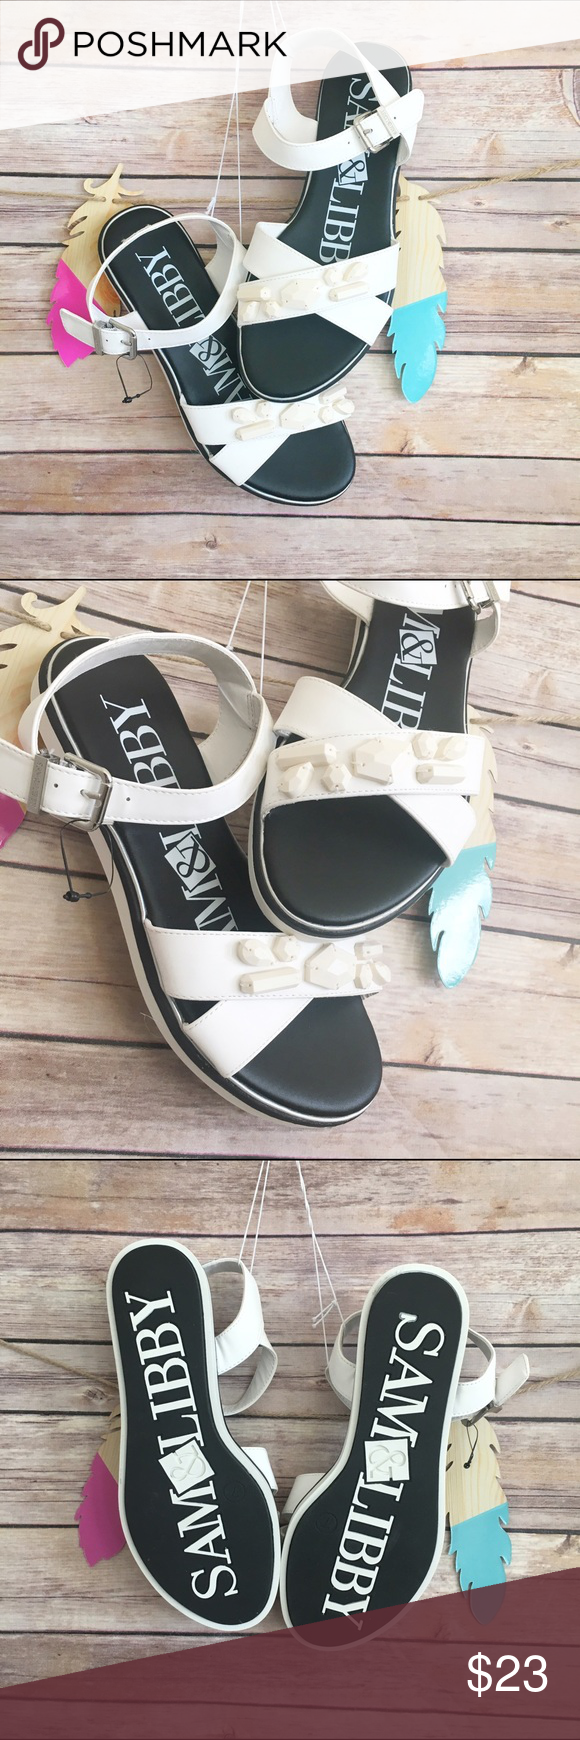 """Sam & libby jacquelyn stone embellished sandals Fun and comfortable shoes. Non marking outsole, cushioned insole, dual straps that cross at the toe with monochromatic stone details and an adjustable buckle strap at the ankle and heel. Medium width, contoured footbed. Outsole is 100% thermoplastic rubber. Approx 1.0"""" heel Sam & Libby Shoes Sandals"""